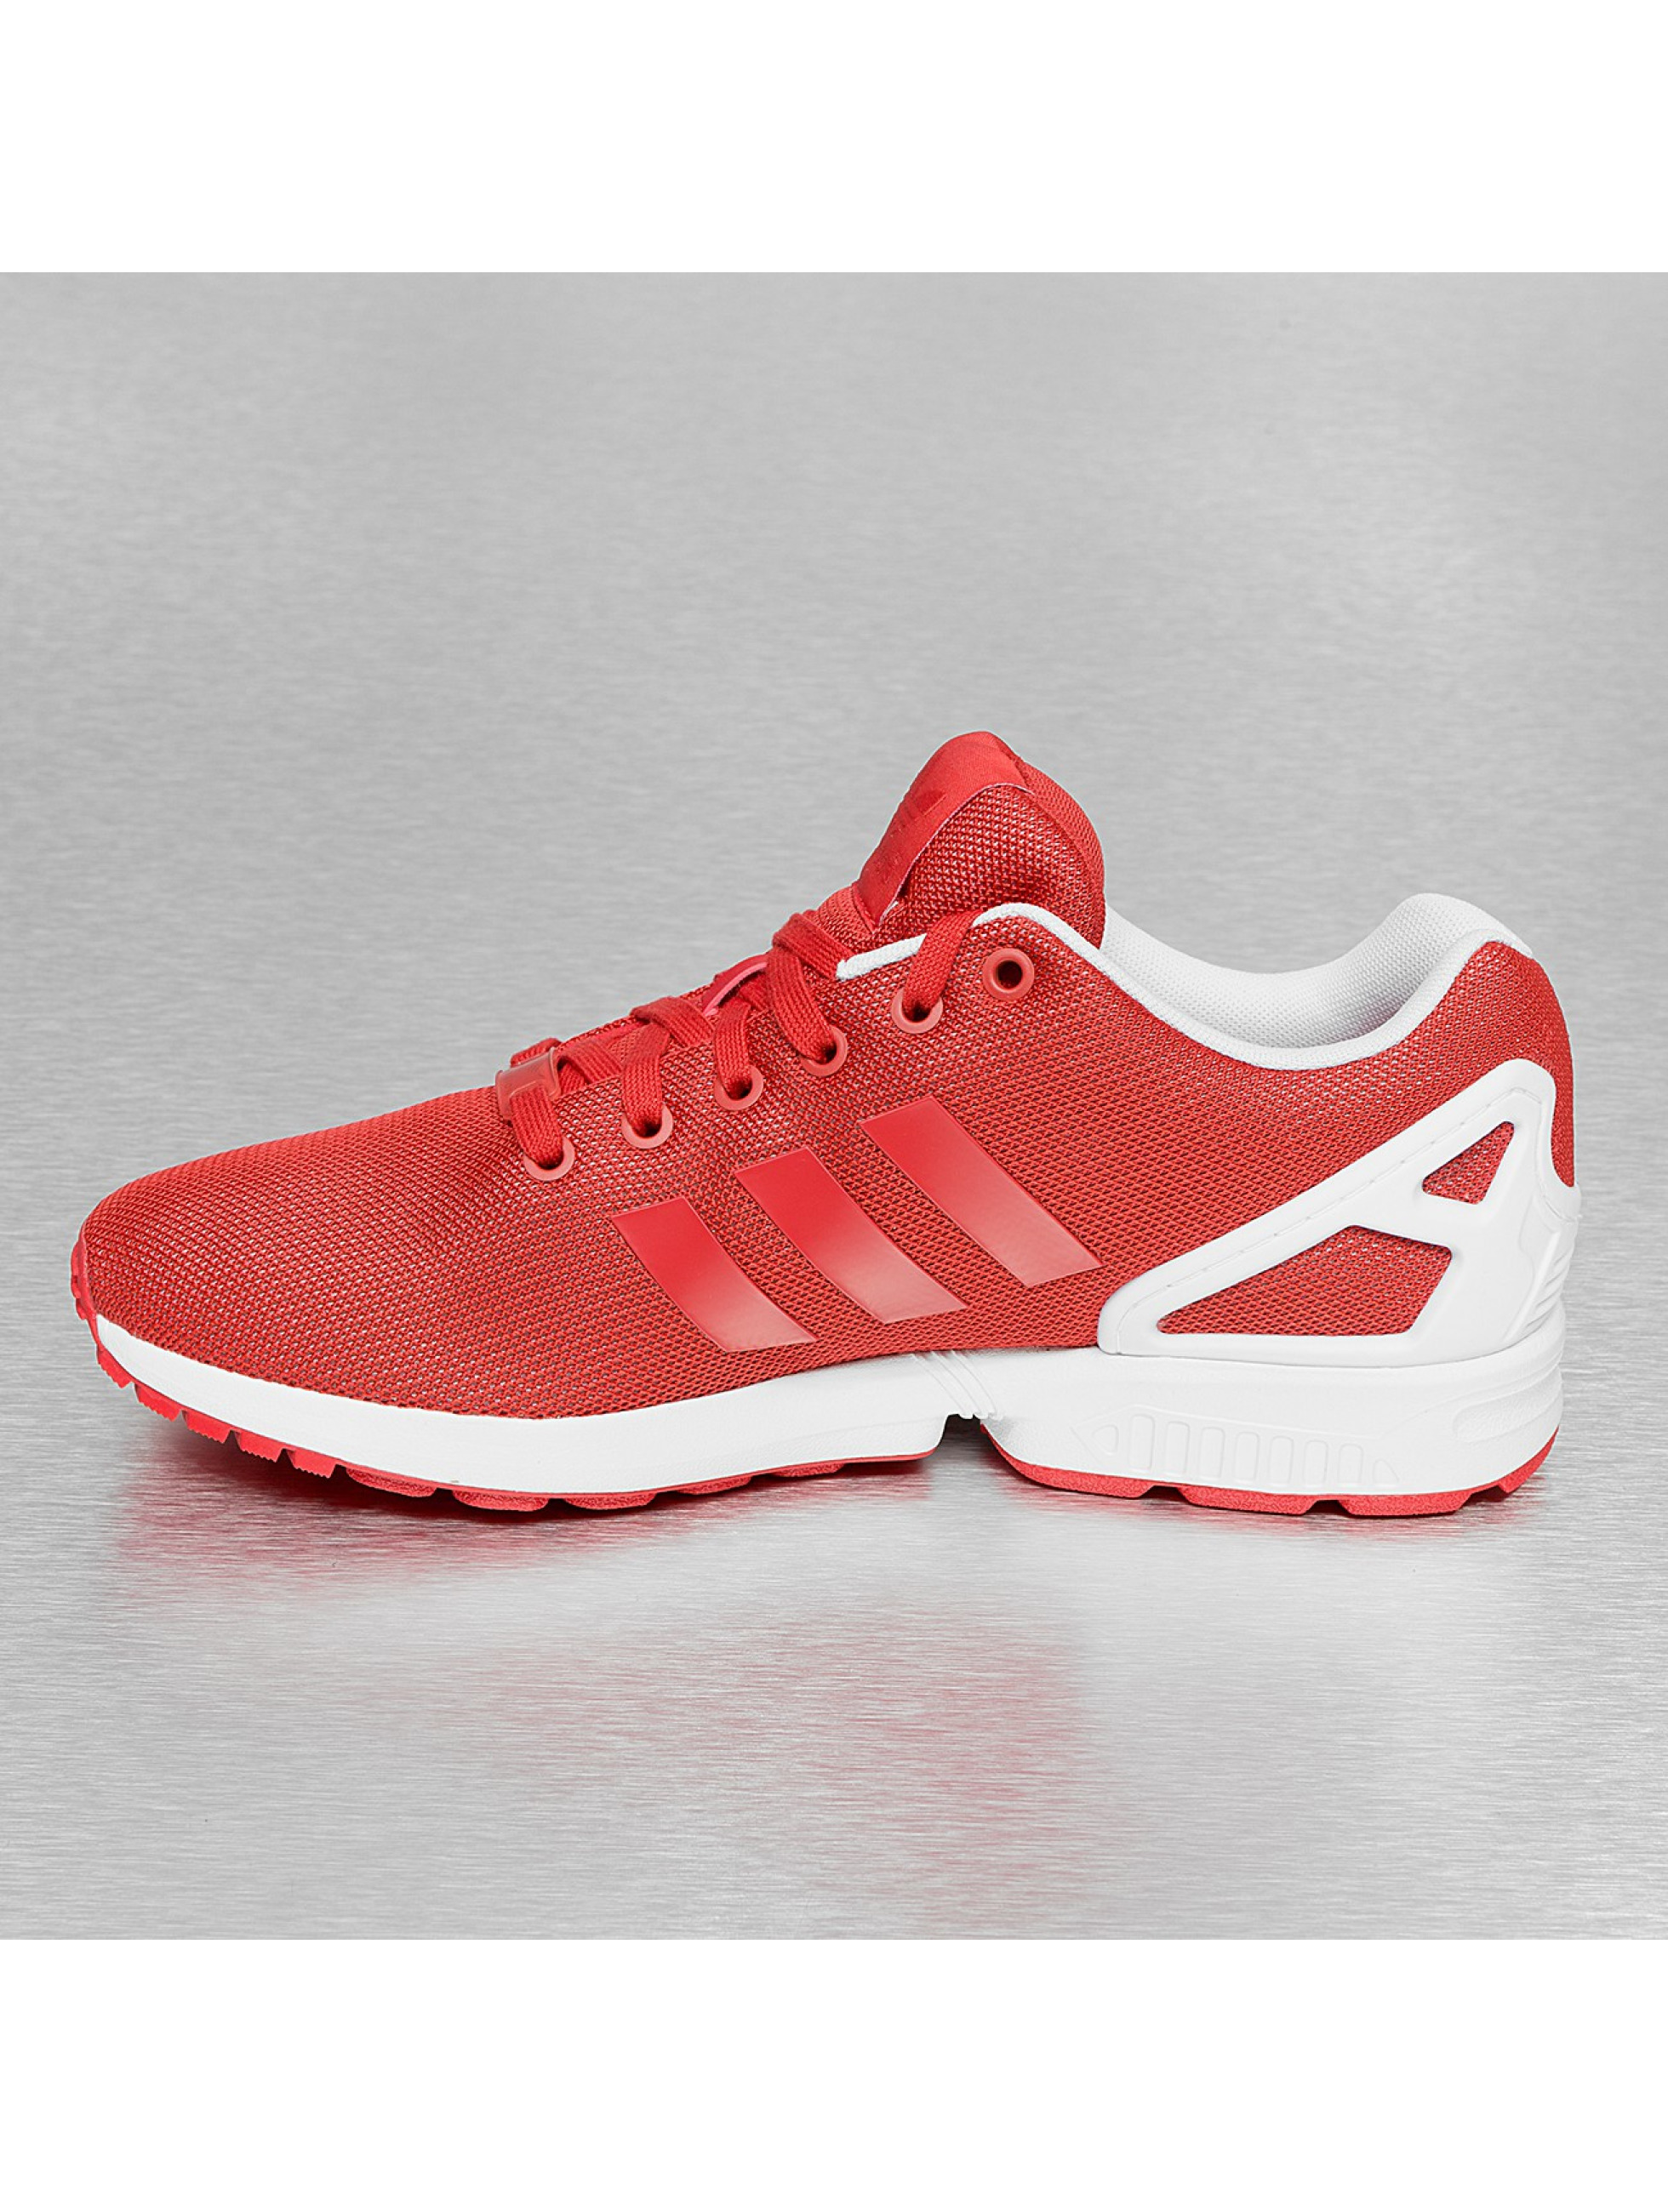 adidas zx flux rood dames